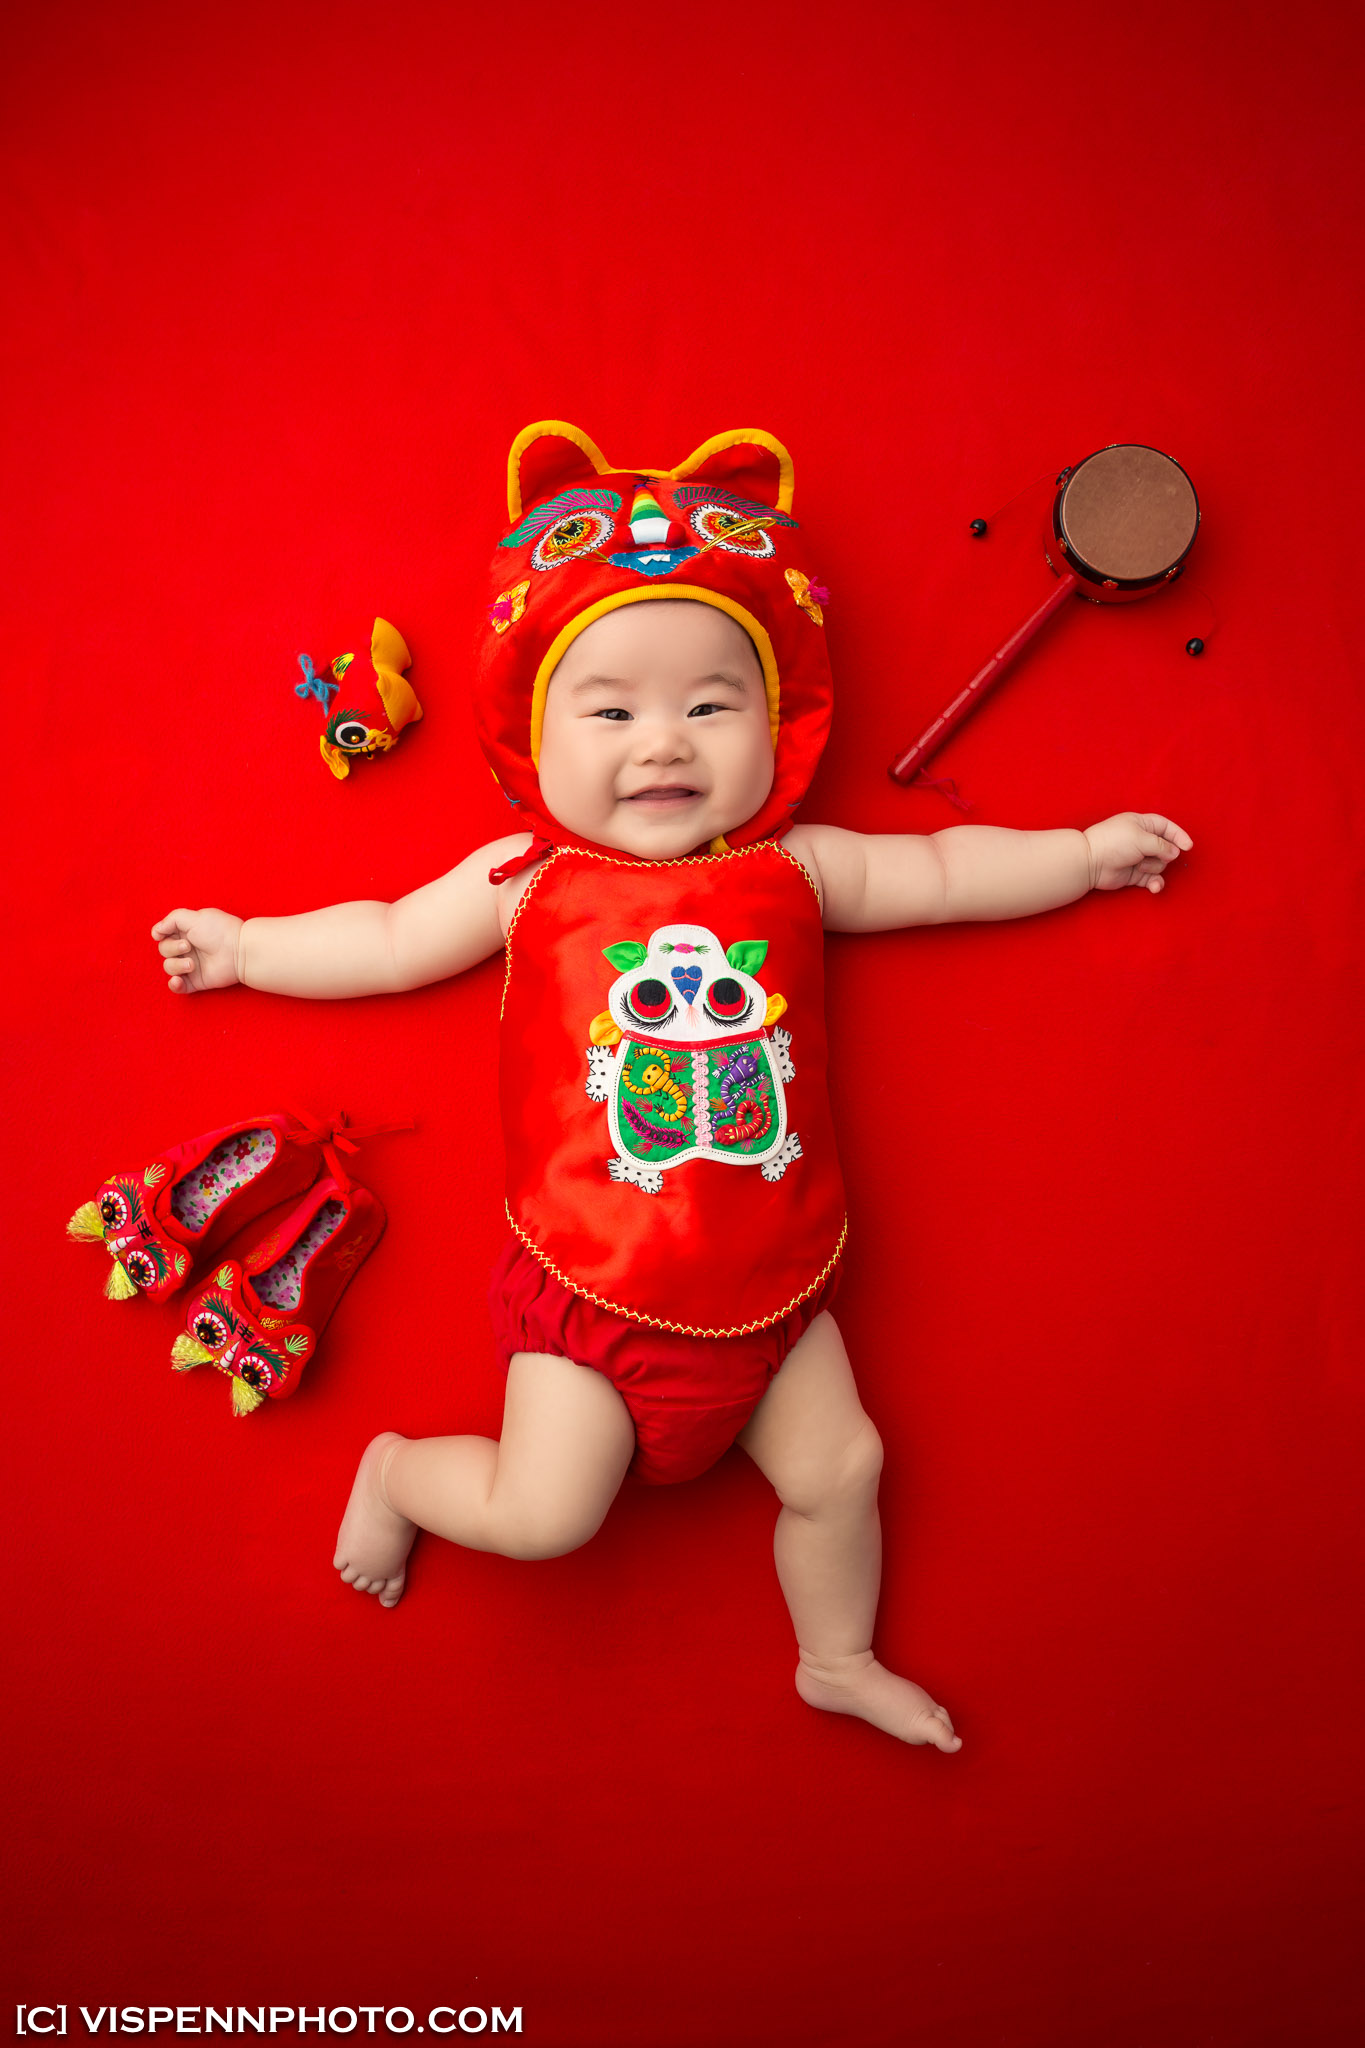 Melbourne Newborn Baby Family Photo BaoBao VISPENN 墨尔本 儿童 宝宝 百天照 满月照 孕妇照 全家福 100DAYS VISPENN RyanYang 1310